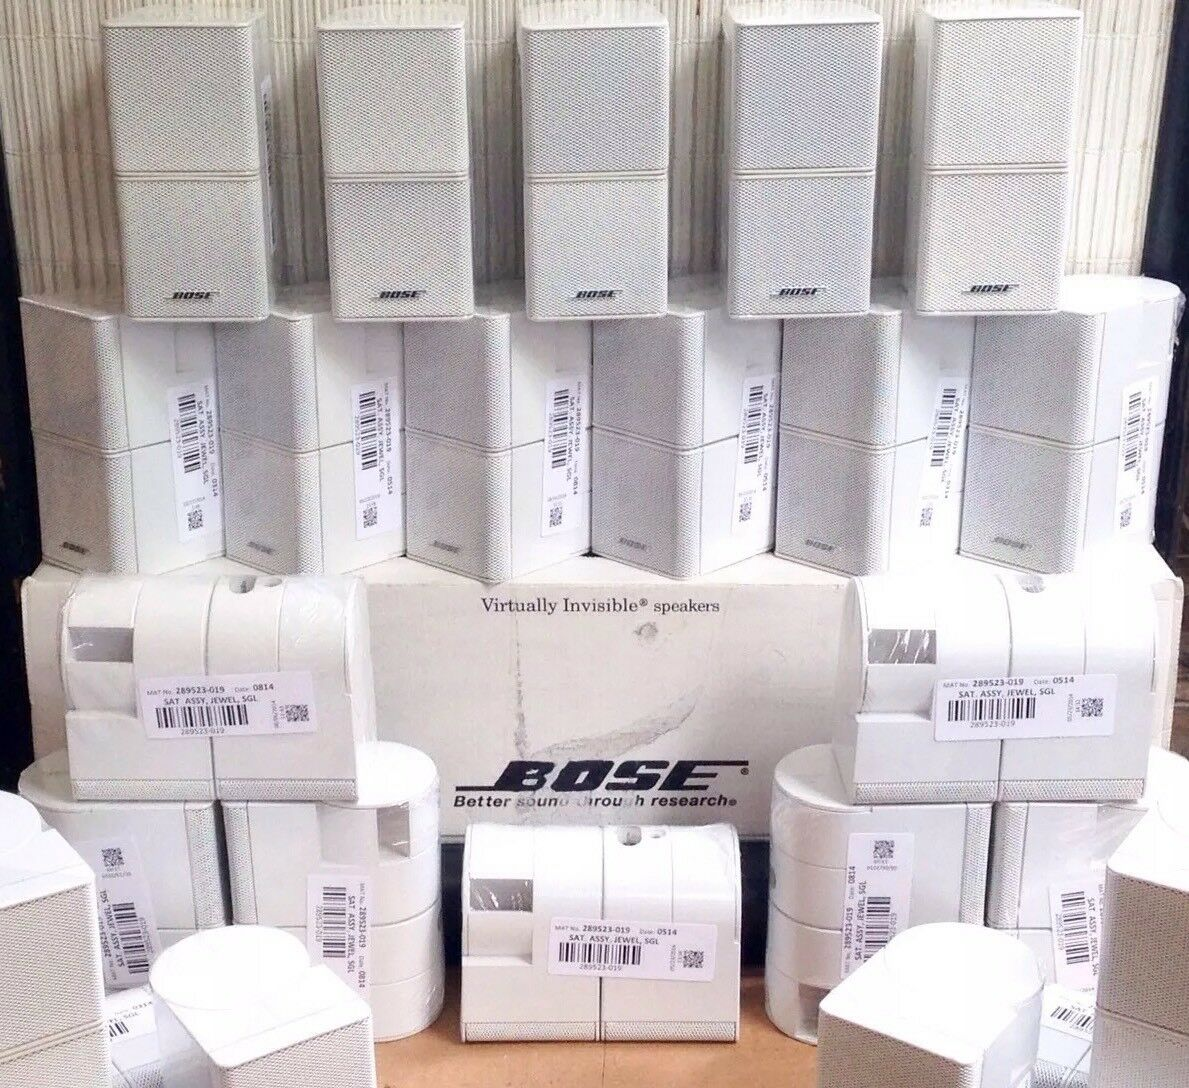 1 Bose Jewel Double Cube Mint Premium Speaker Flawless Multiple Available White